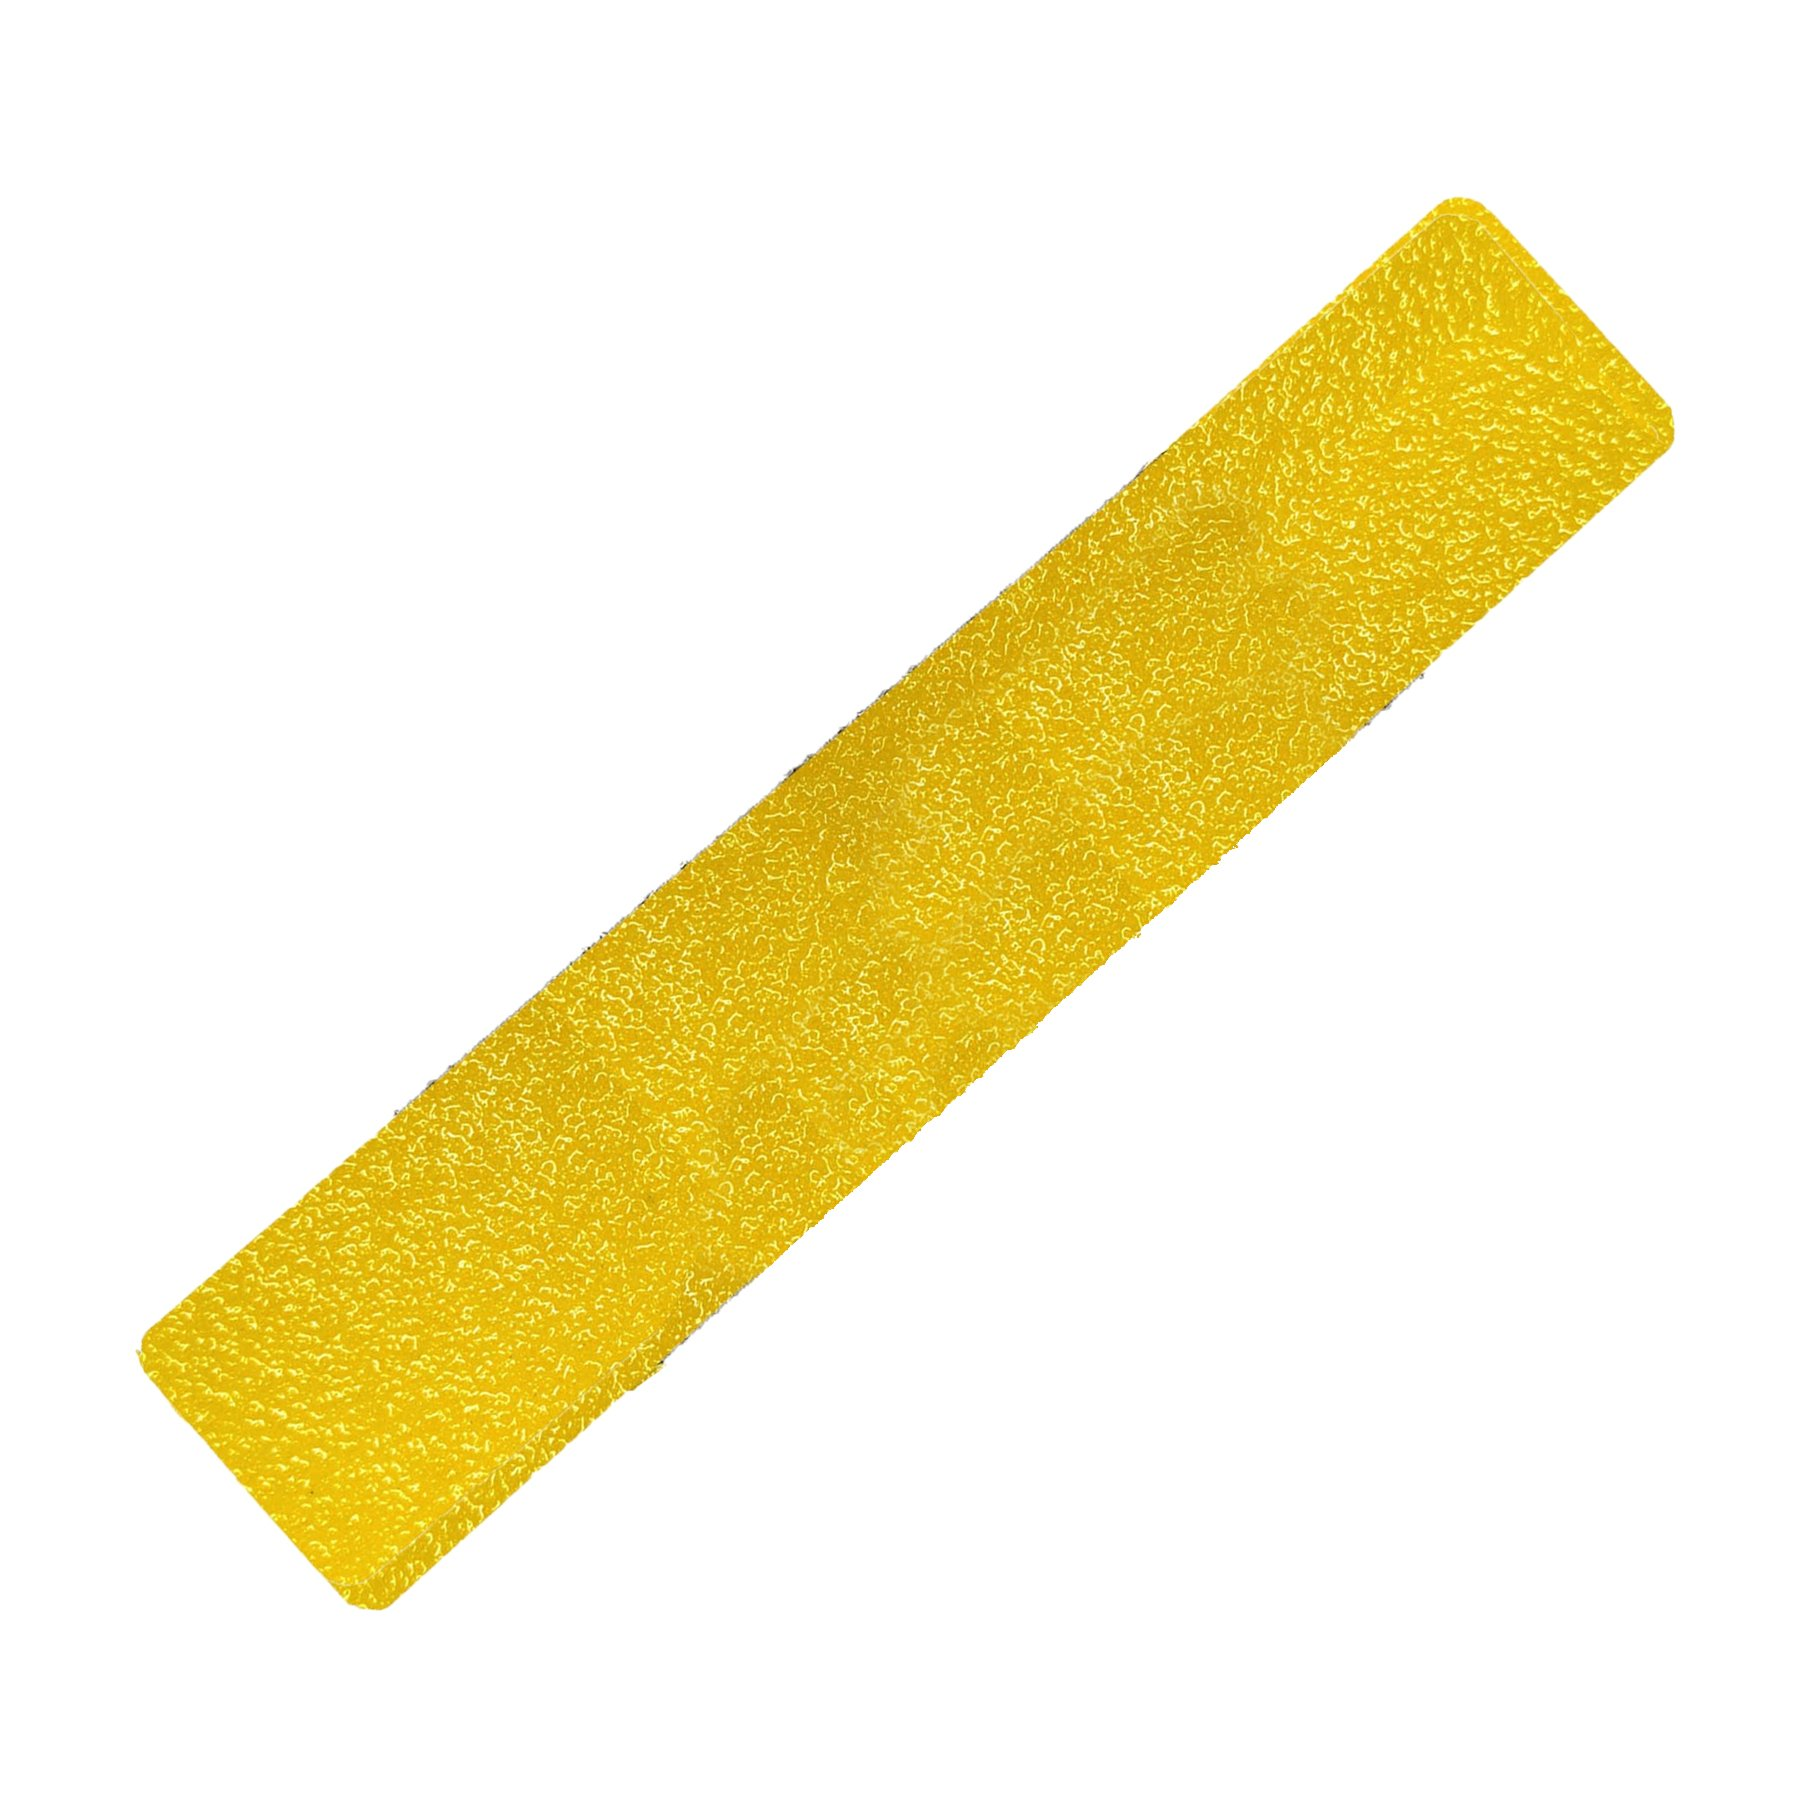 MASTER STOP 88408SEM 4'' X 30' EXTREME DUTY MEDIUM GRIT TAPE -YELLOW COLOR- 30 FOOT ROLLS by MASTER STOP